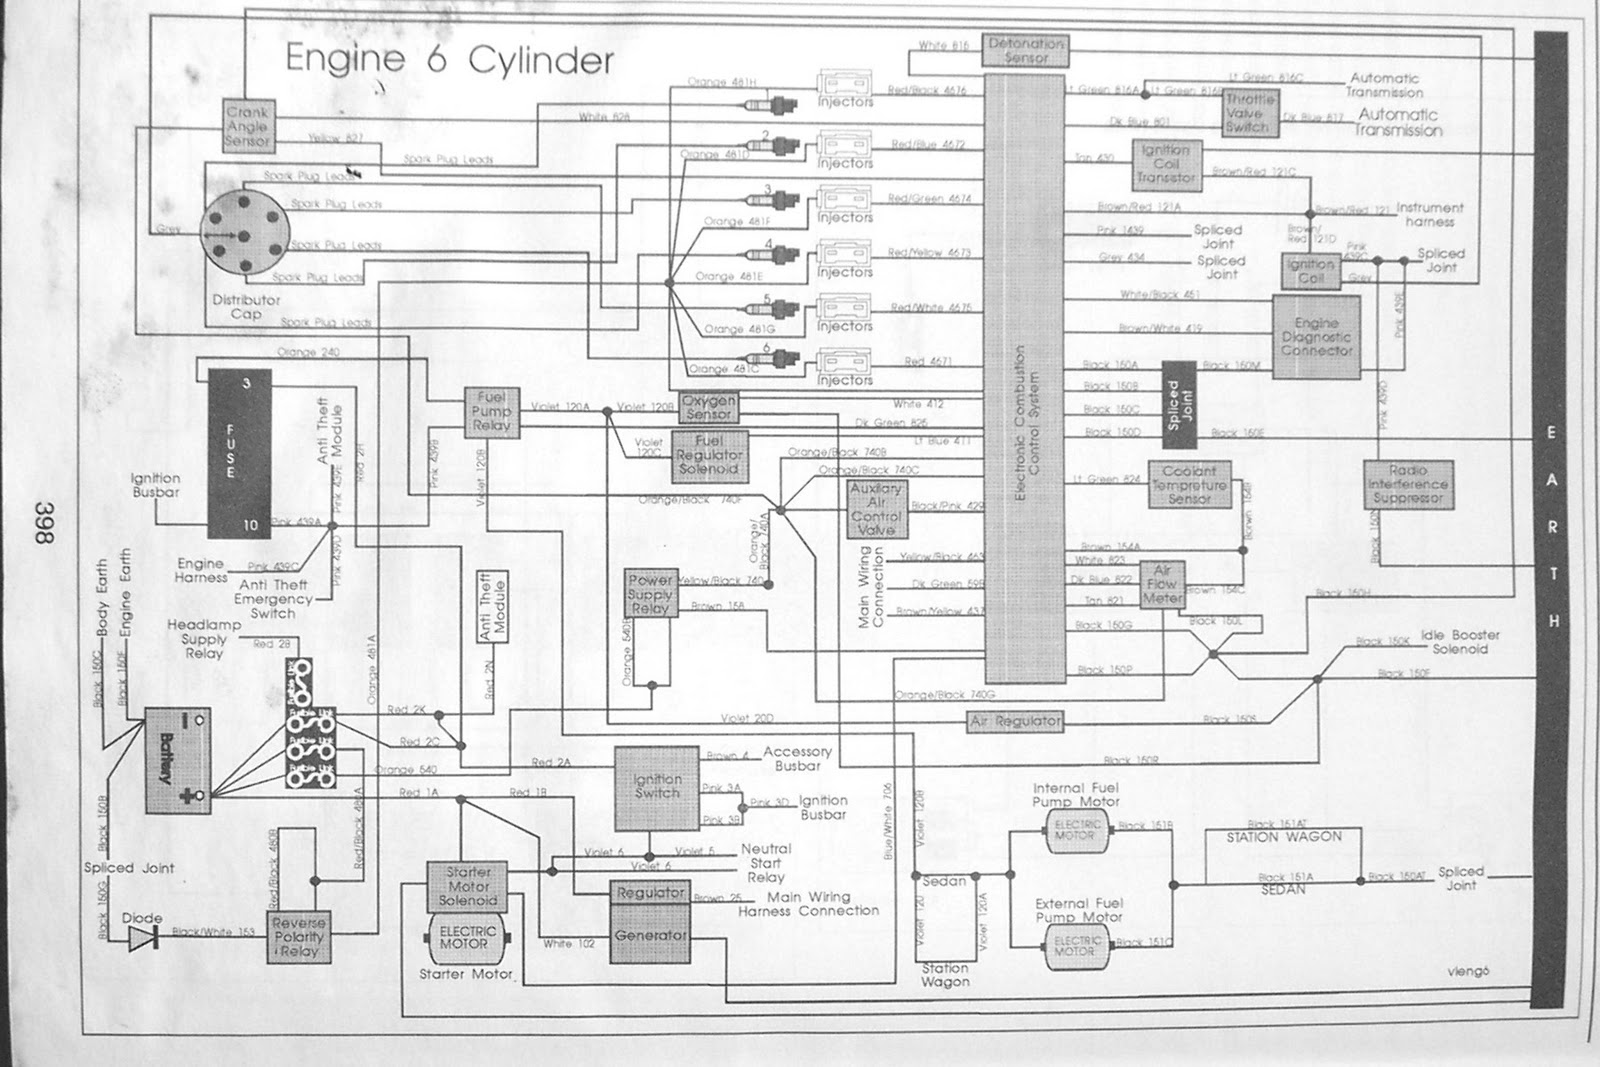 14b rb30 wiring diagrams 280zx project vl wiring diagram at mifinder.co